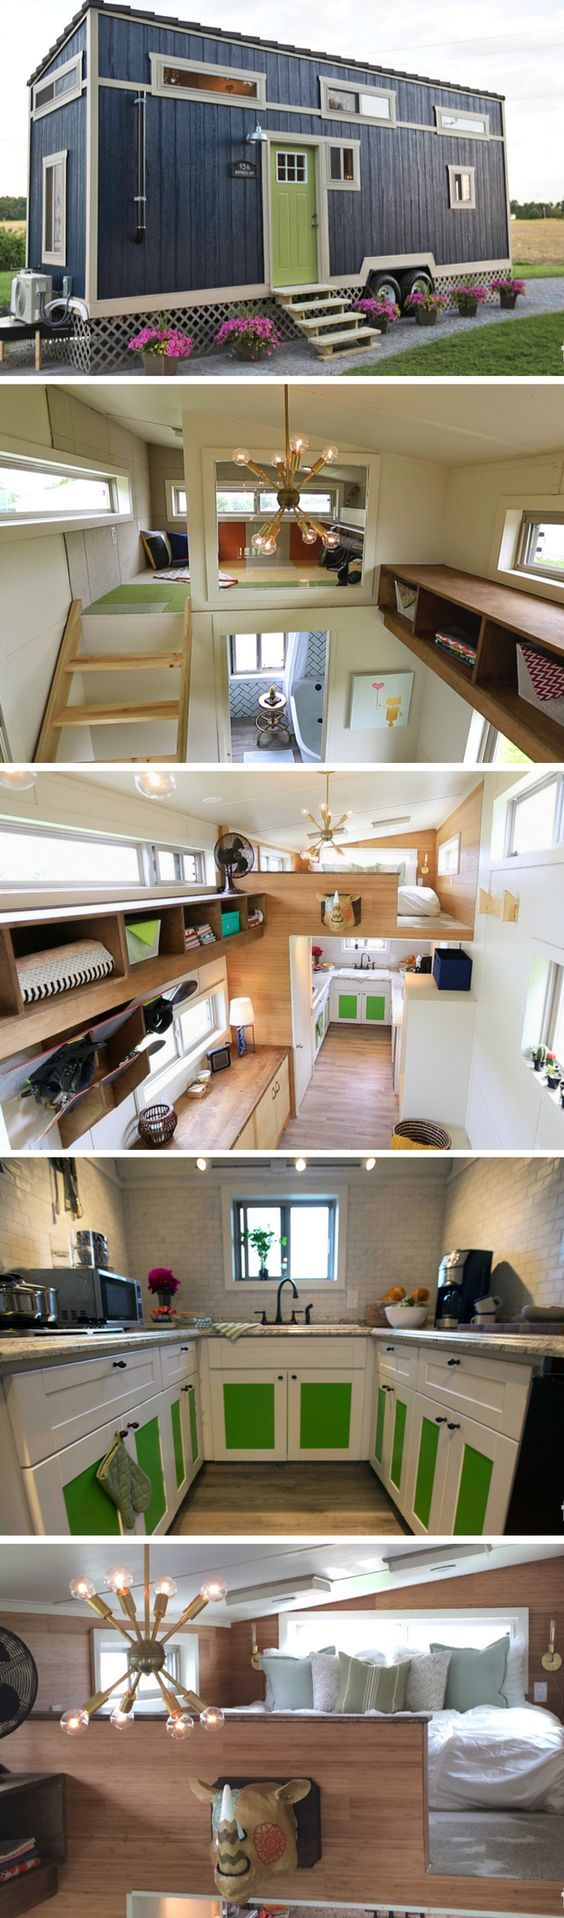 2 bedroom house with loft   best tiny house images by tiffany painter on Pinterest  Small